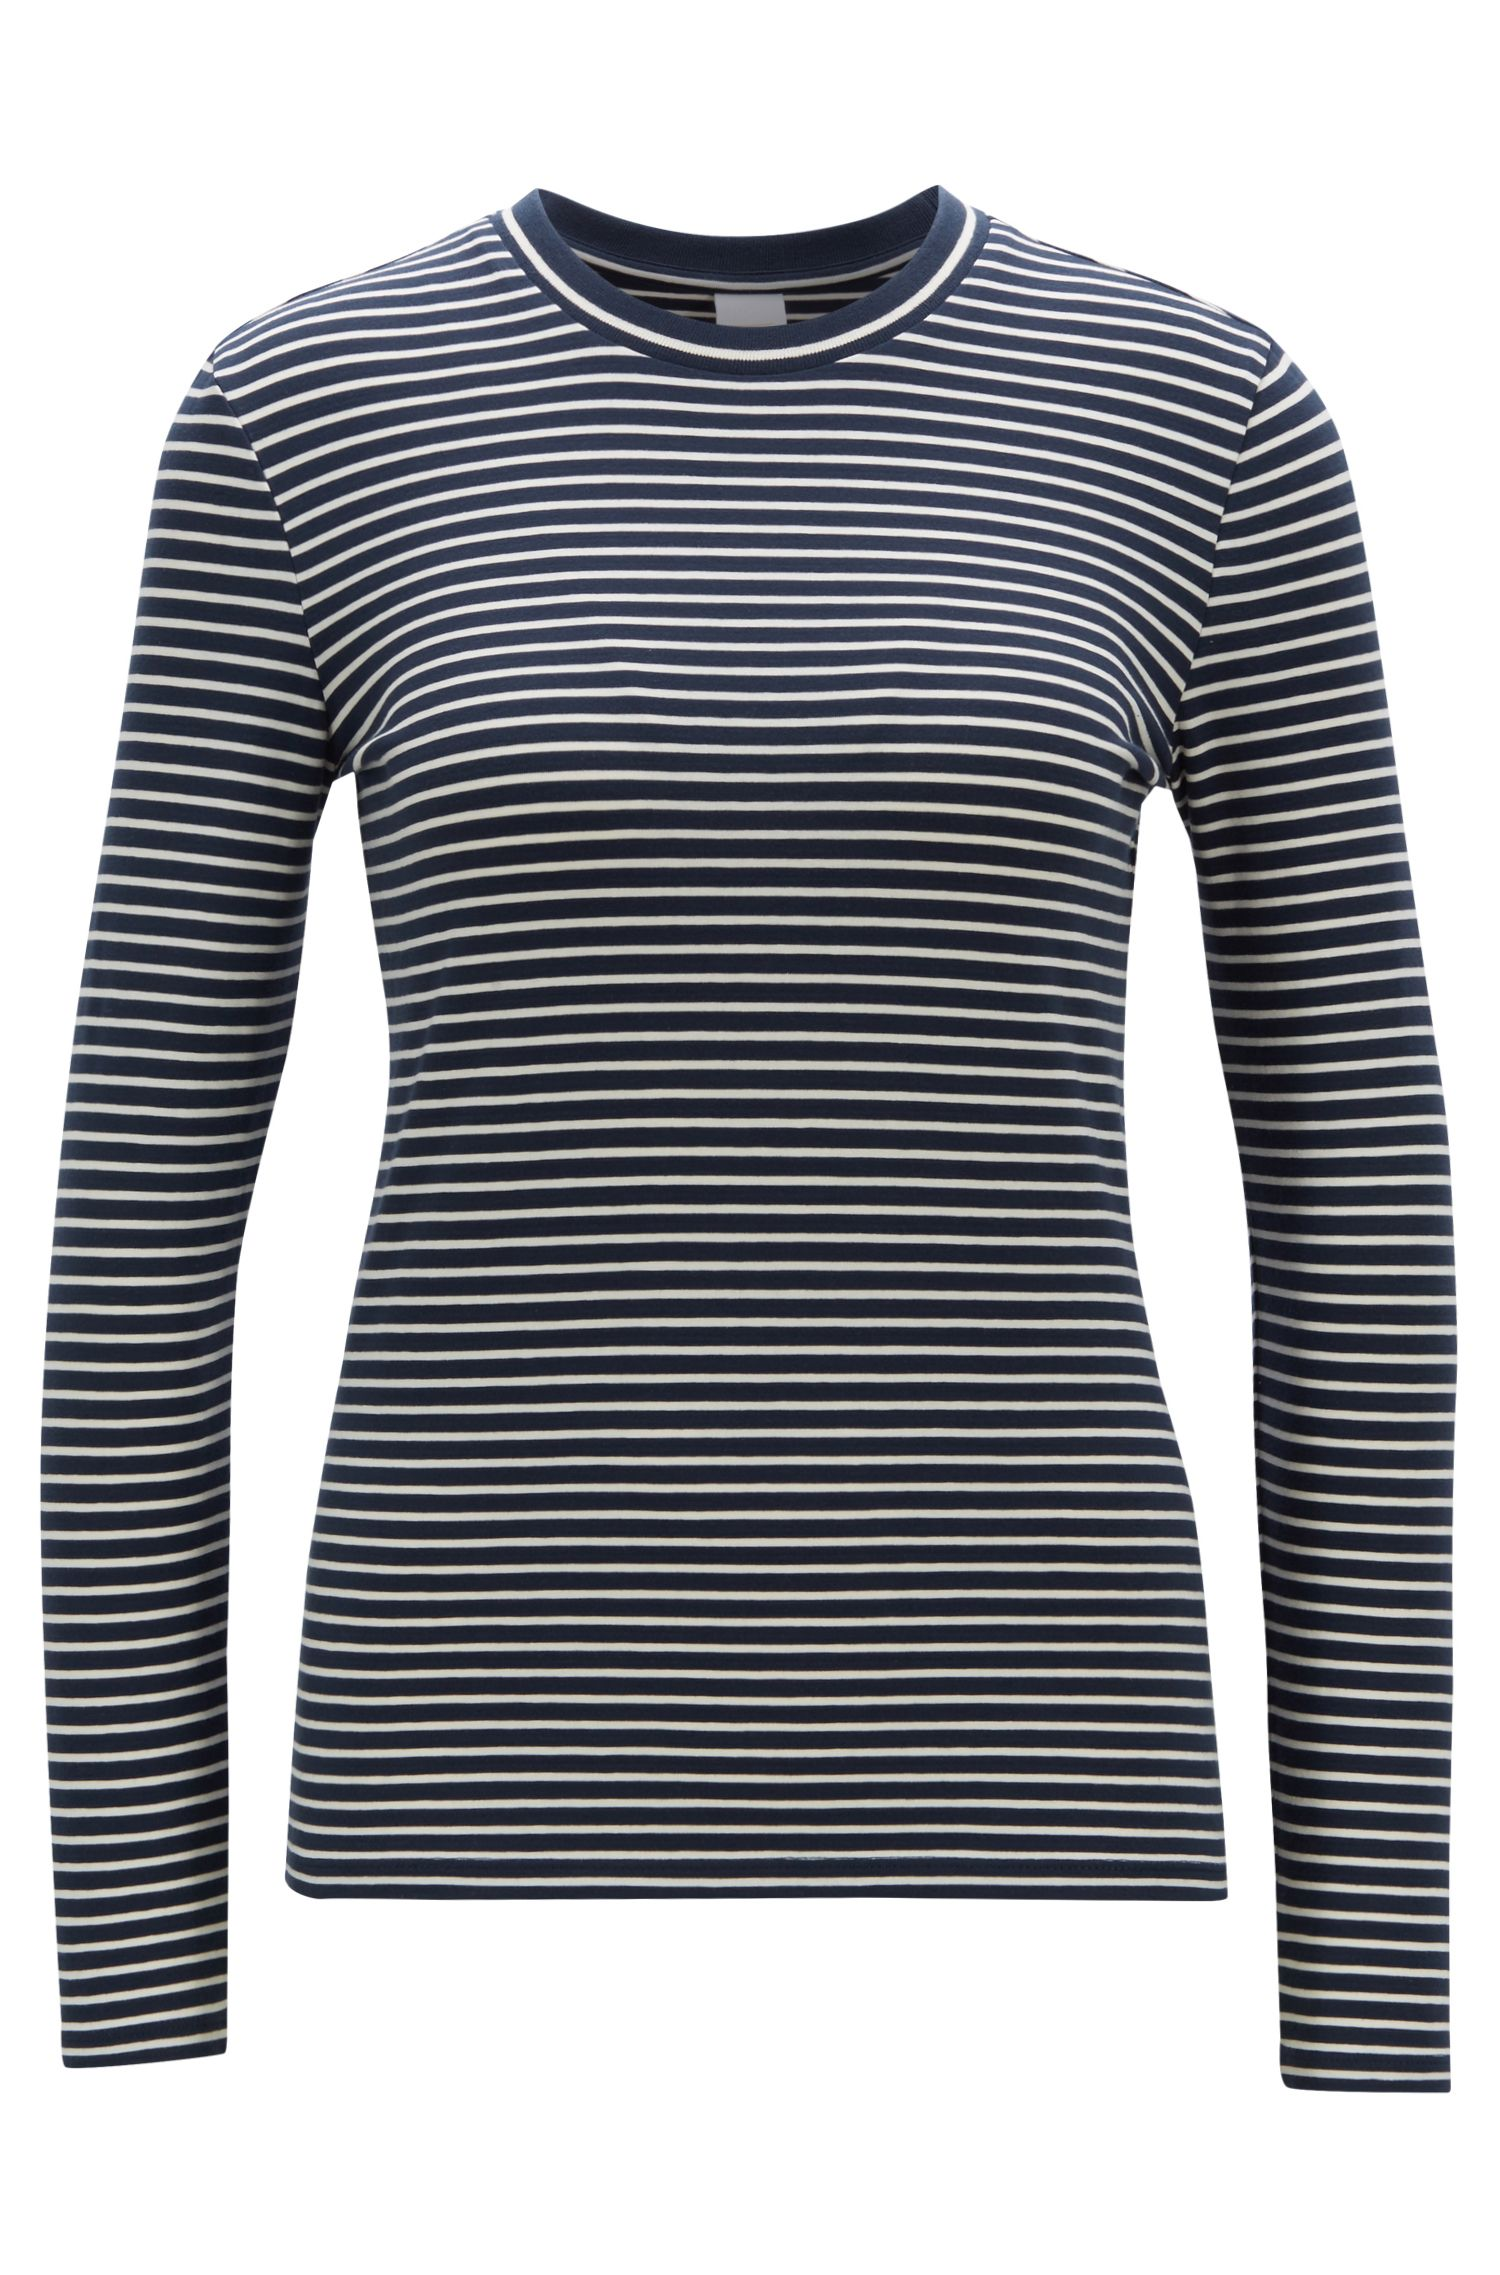 Slim-fit long-sleeved T-shirt in striped stretch cotton, Patterned